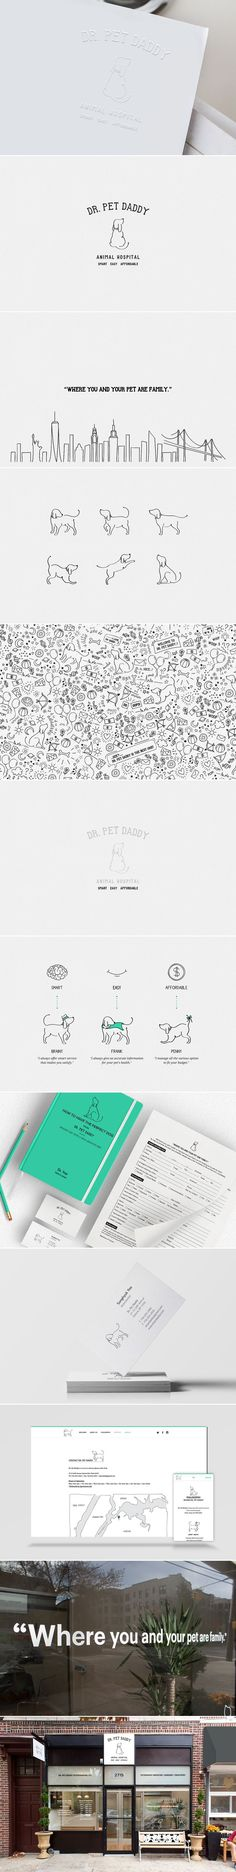 Dogs logo design style 31 Ideas for 2019 Web Design, Dog Logo Design, Brand Identity Design, Branding Design, Design Art, Interior Design, Layout, Pet Branding, Clothing Logo